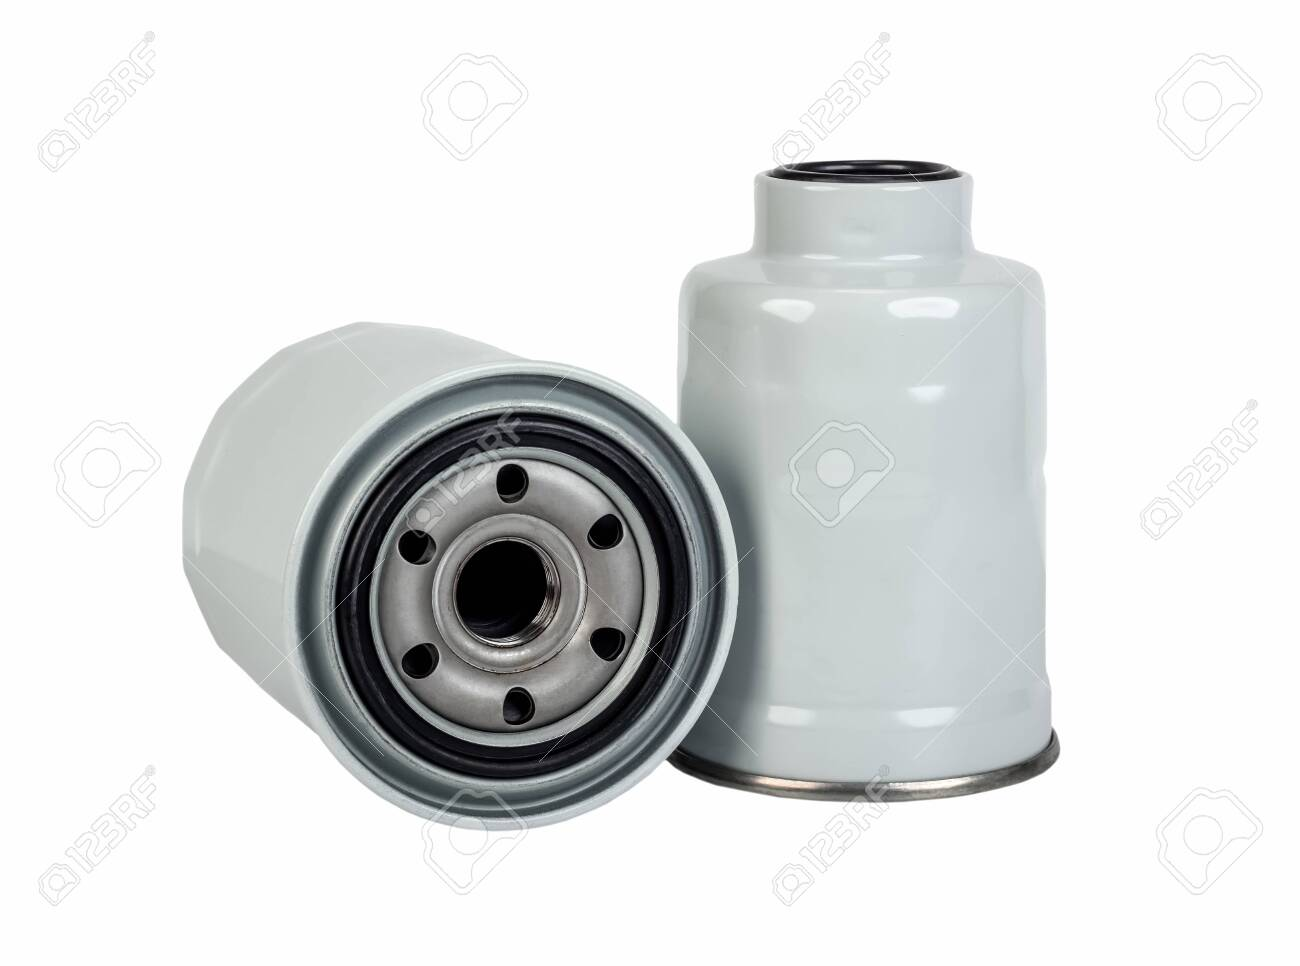 Oil and fuel car filter isolated on white background - 133870170